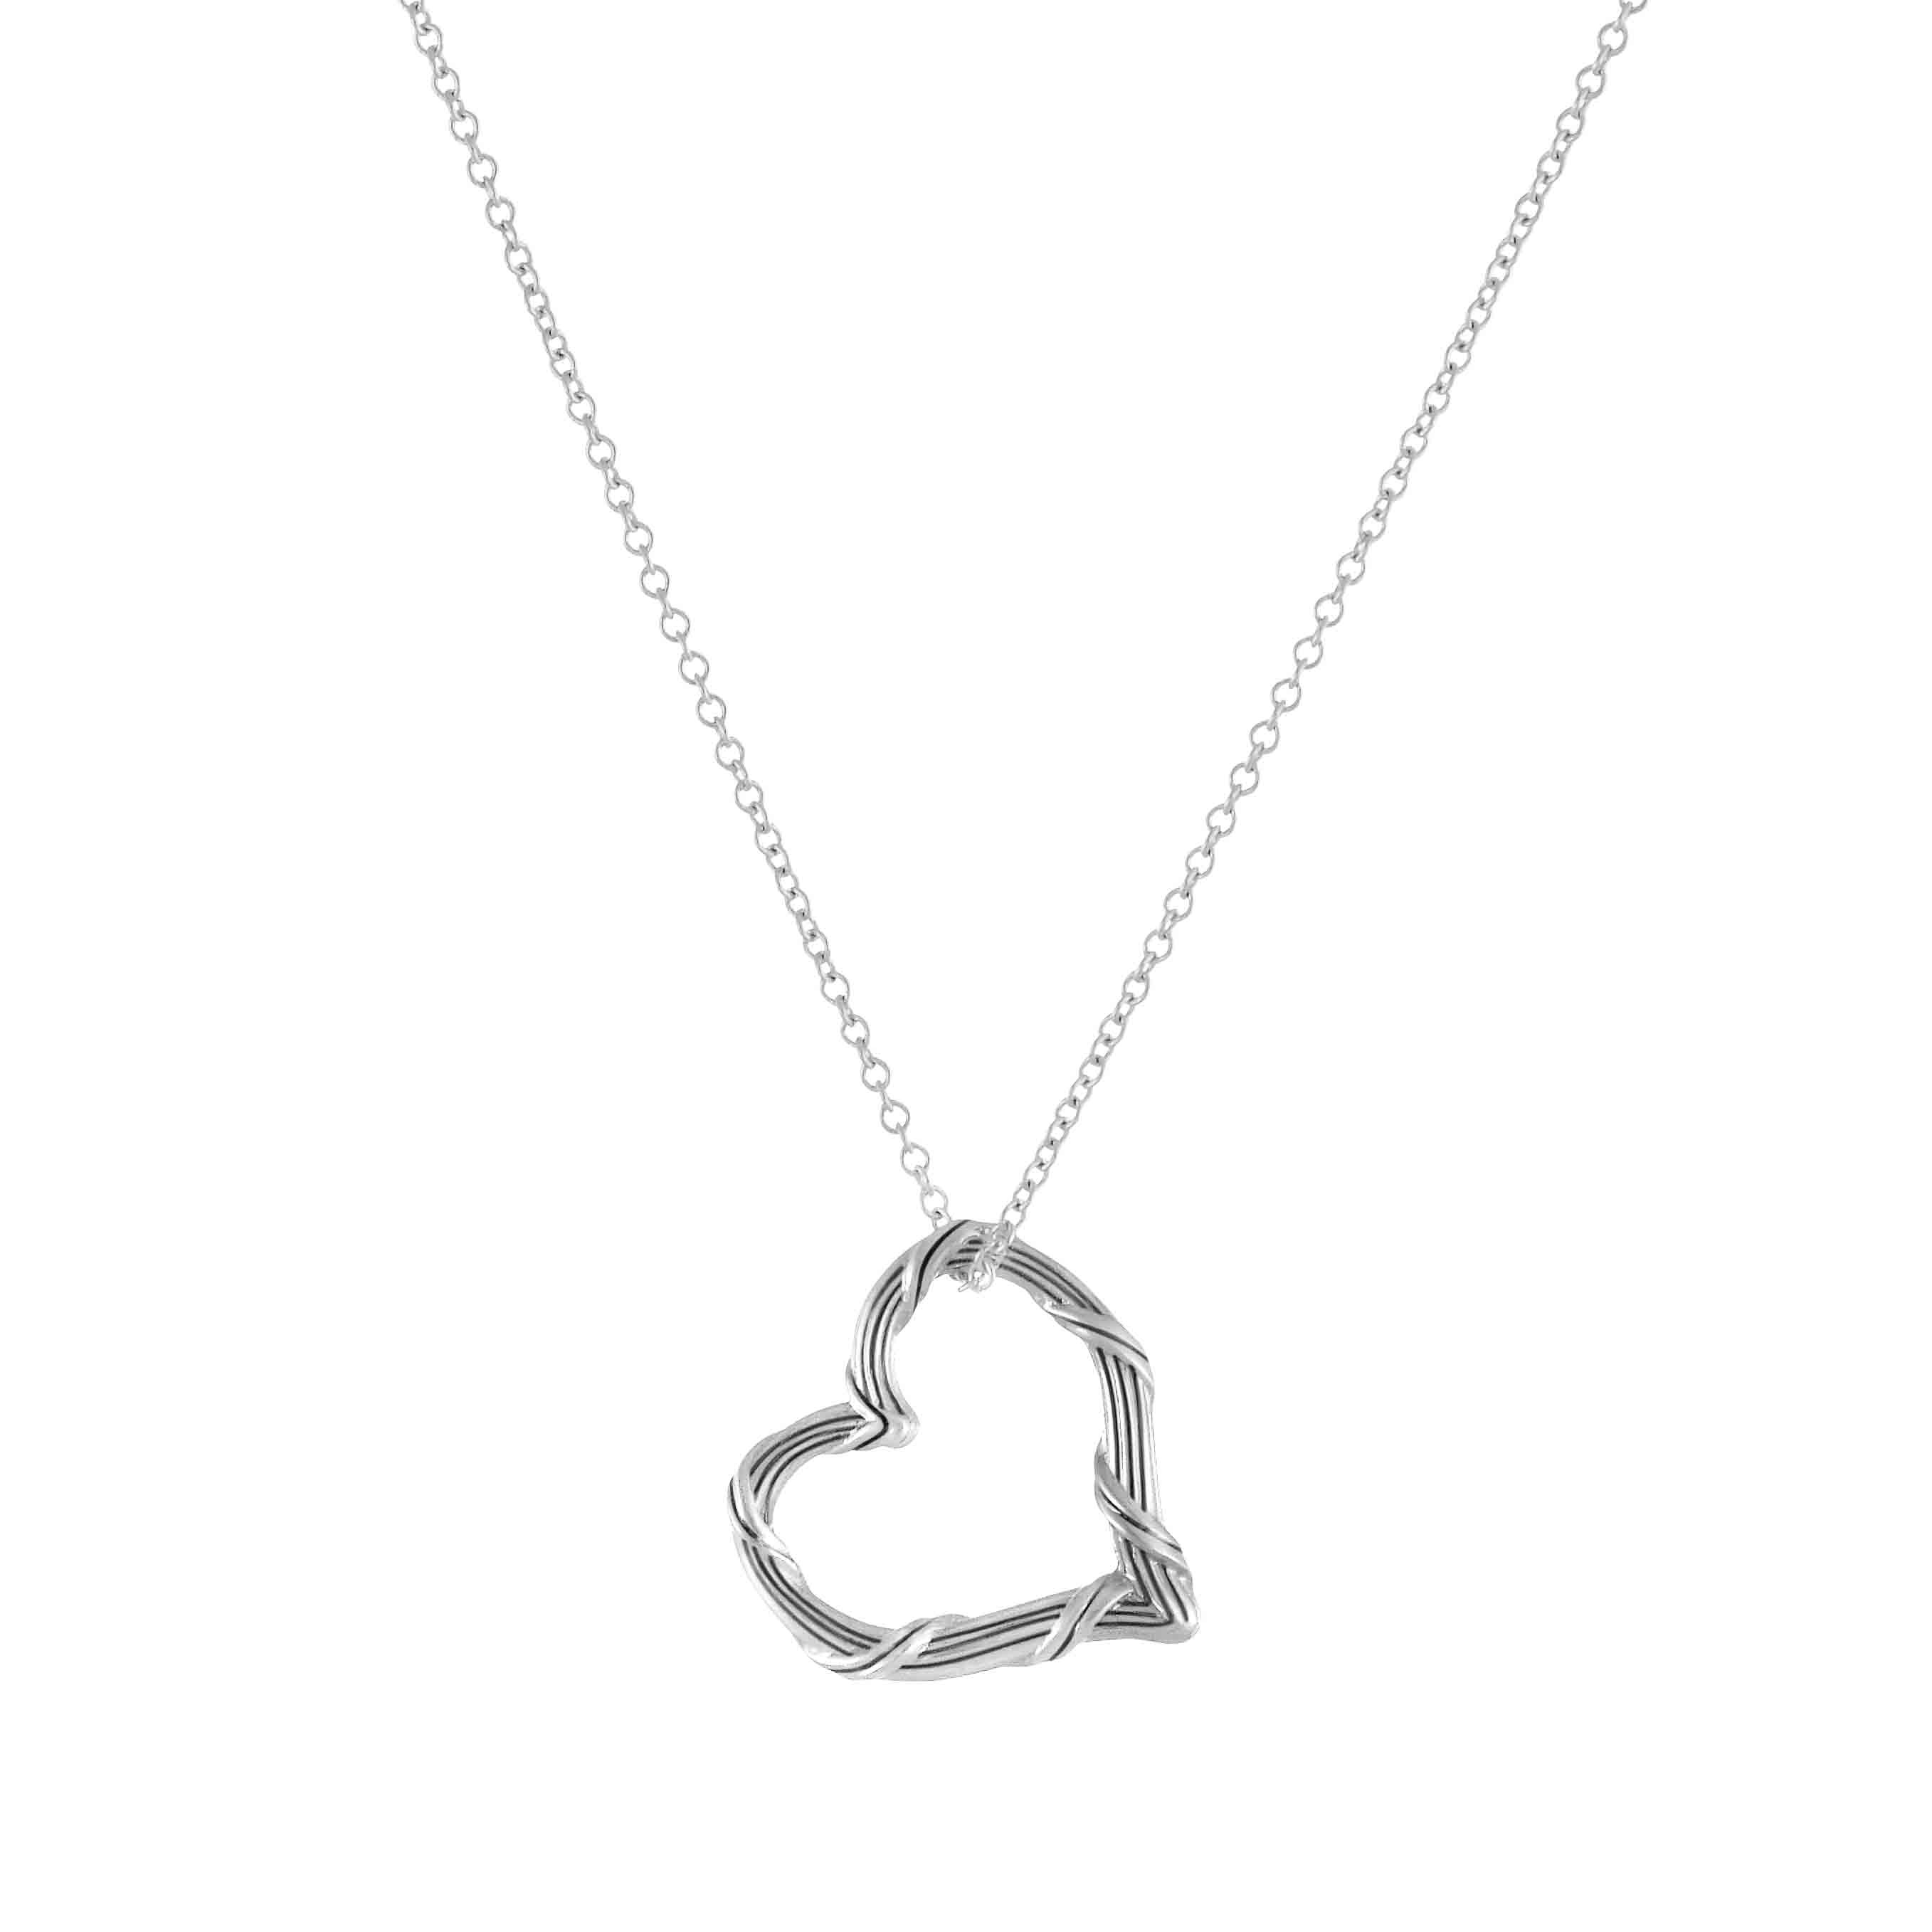 Signature Mini Floating Heart Necklace in Sterling Silver